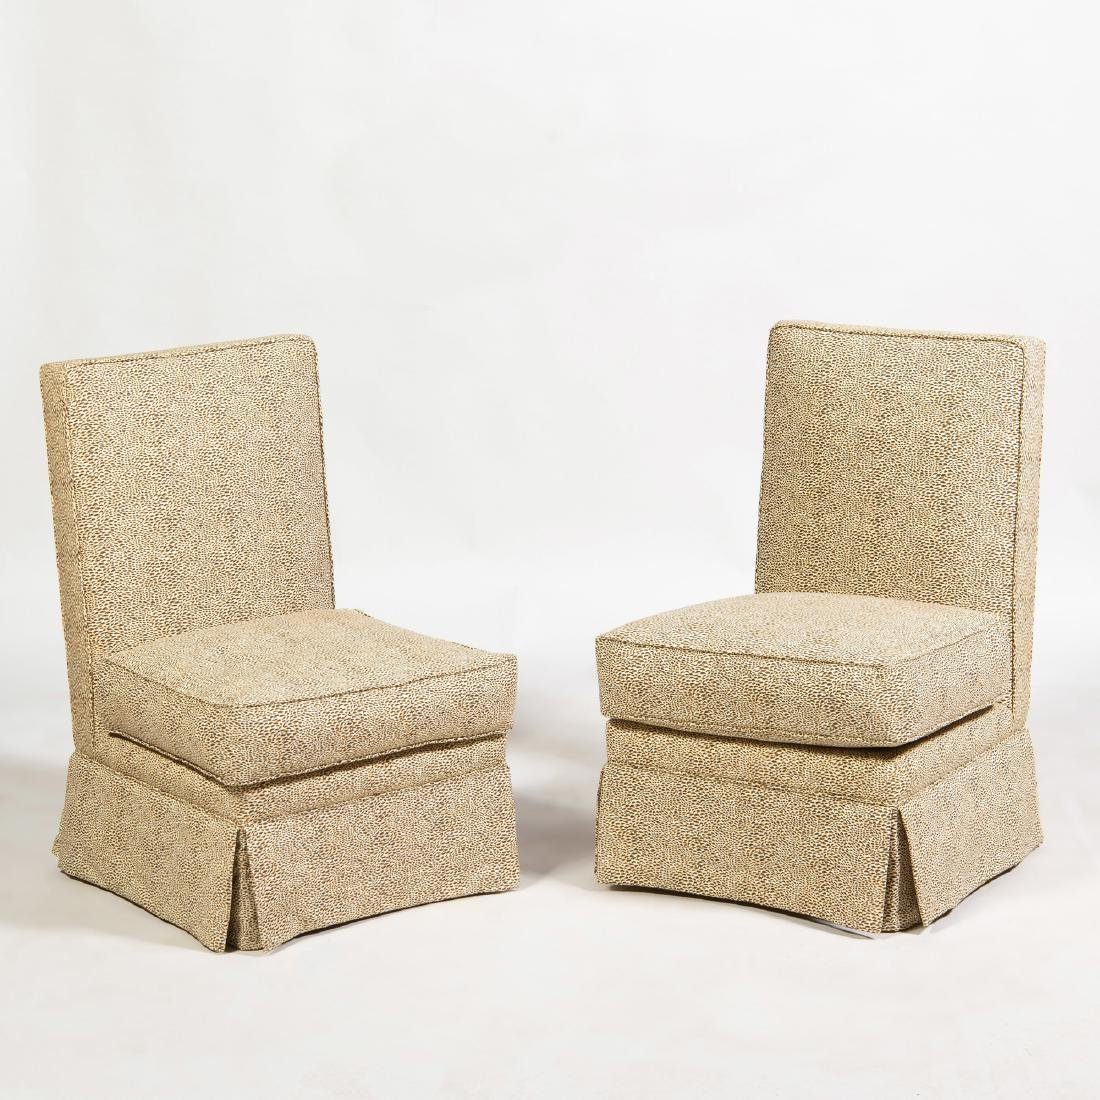 Pair of Upholstered Slipper Chairs, In the Manner of